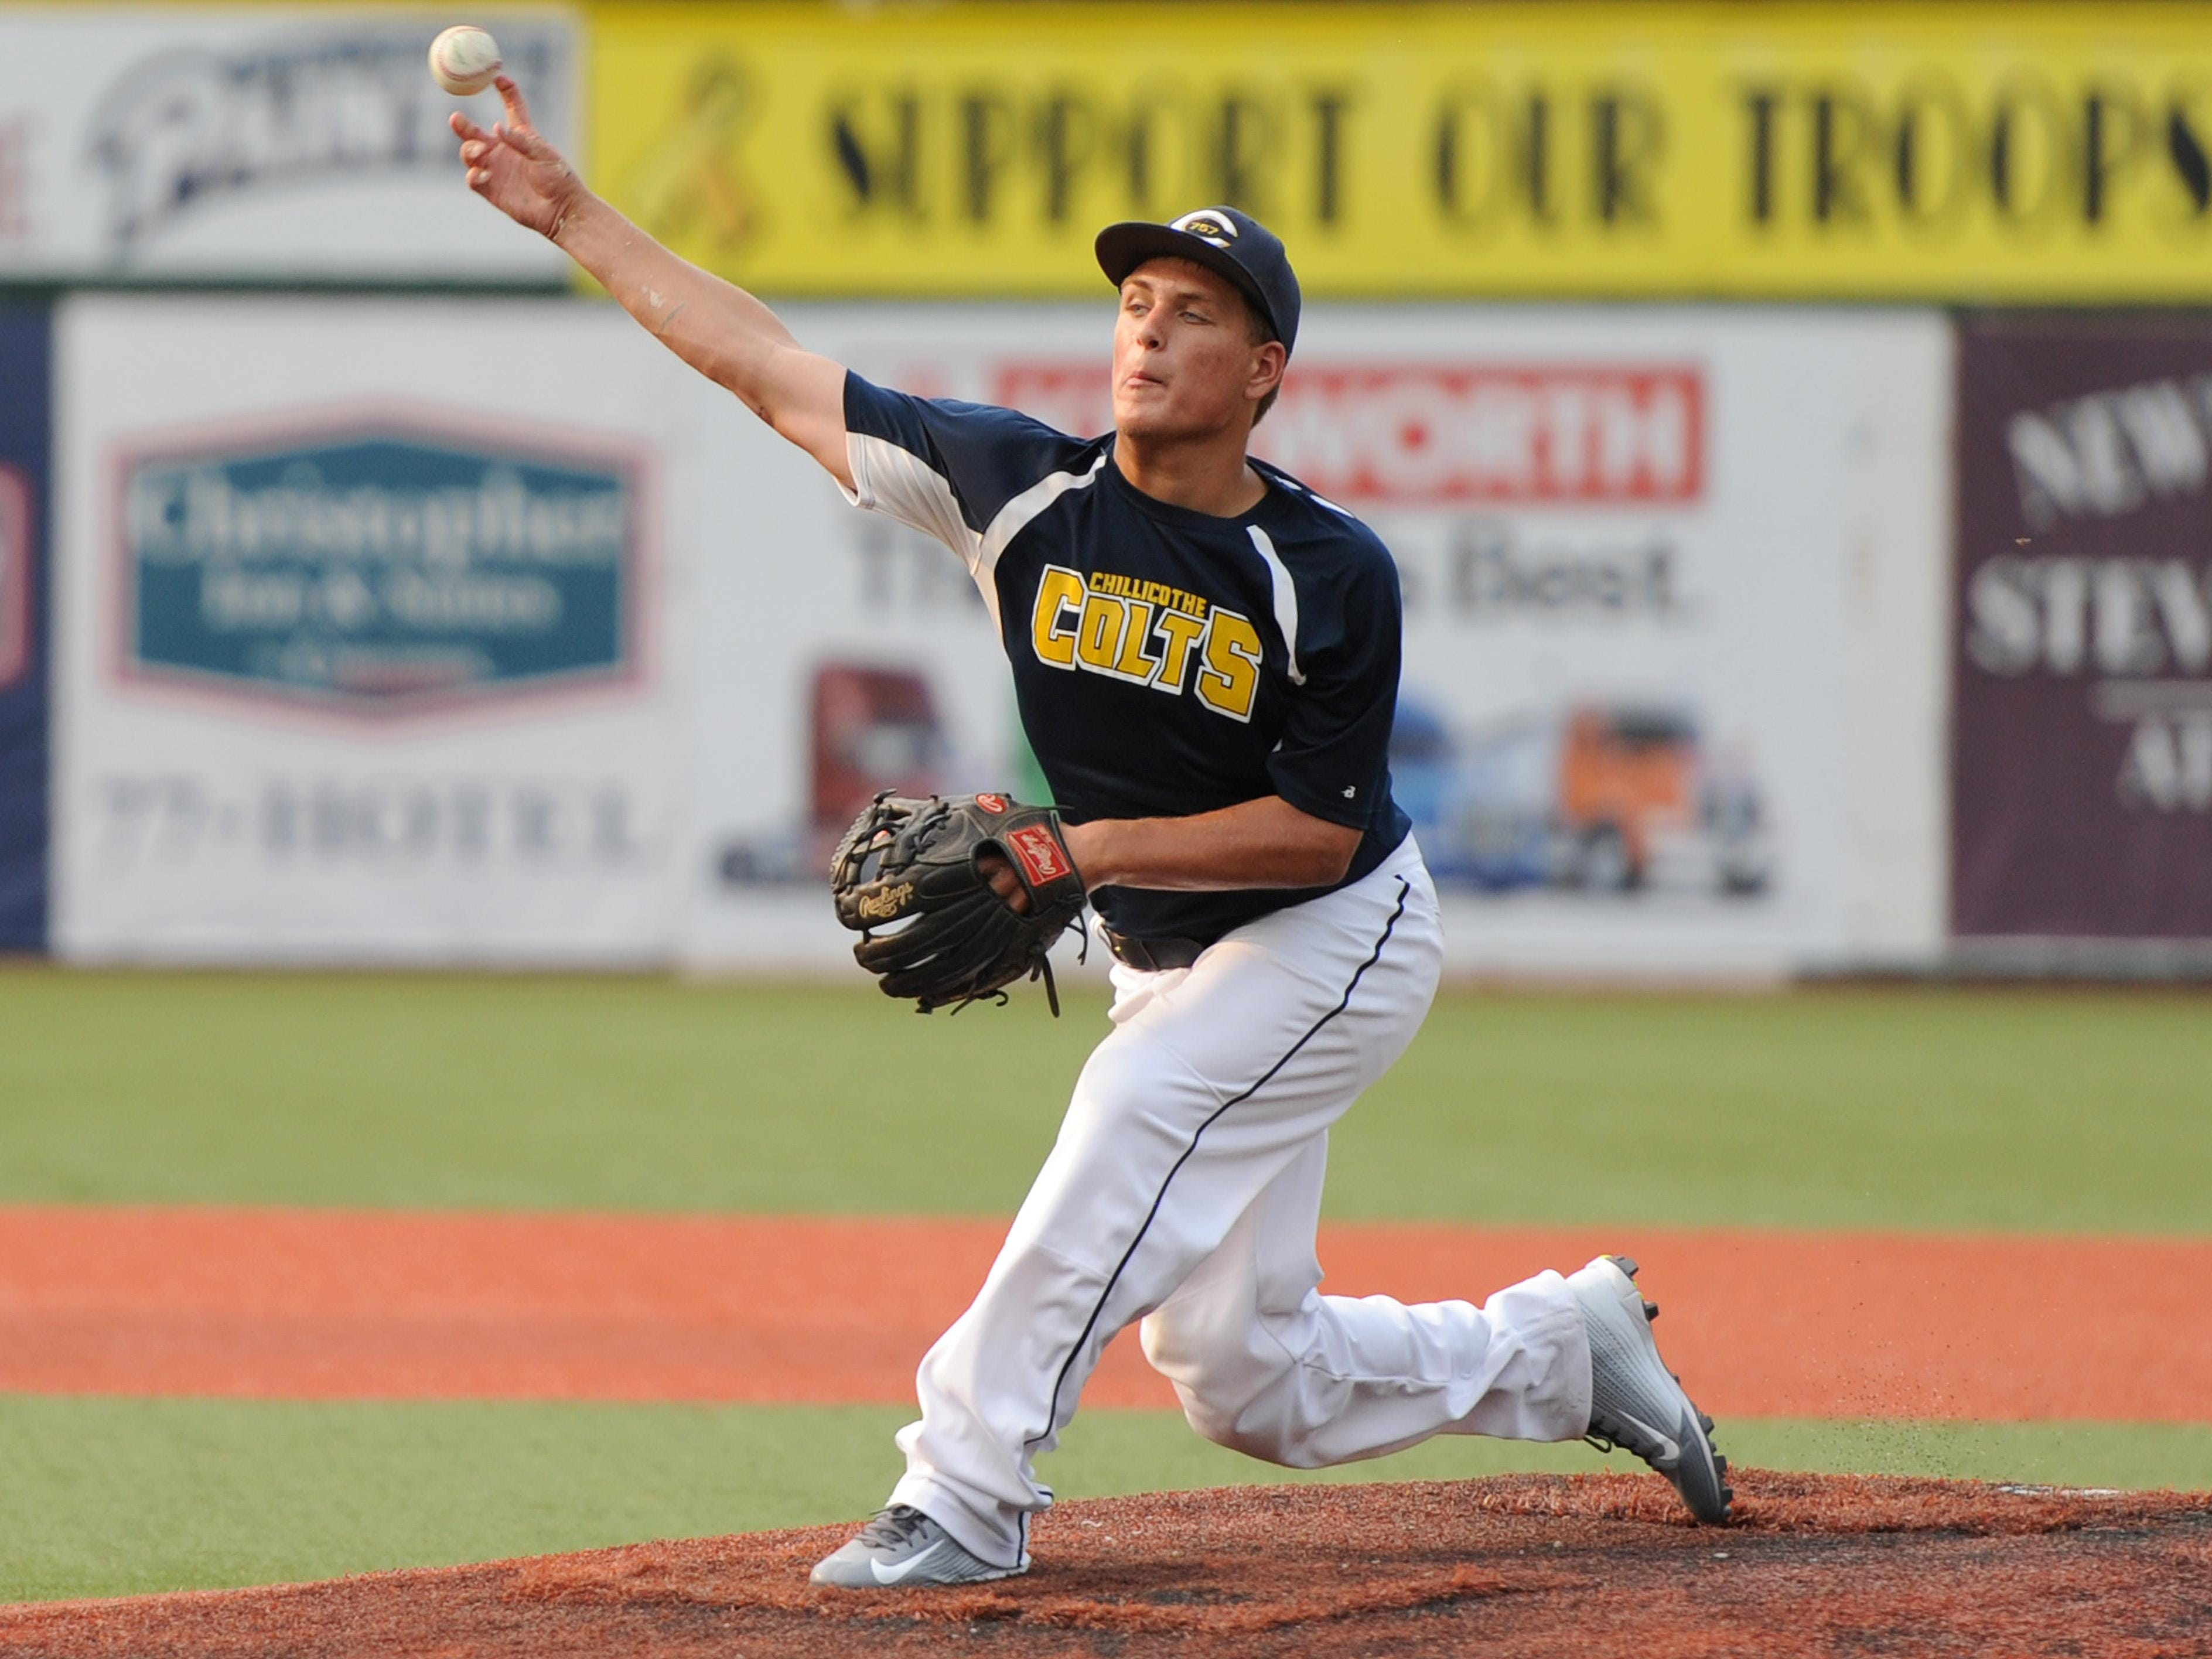 Chillicothe Post 757's Josh George pitches during the game against Washington Courthouse Post 25 at V.A. Memorial Stadium on Wednesday.